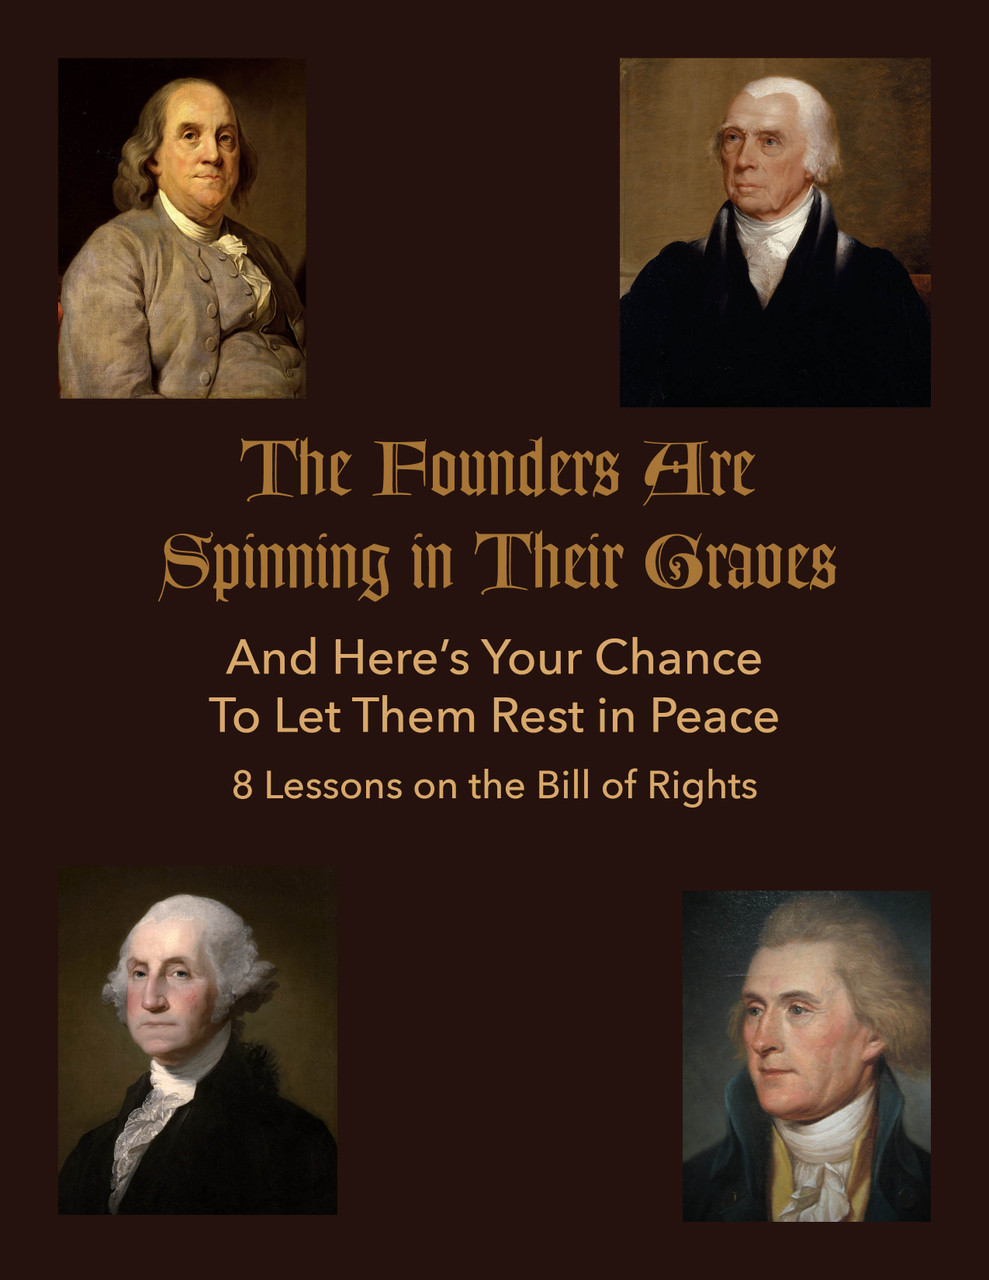 The Founding Fathers Are Spinning in Their Graves – Here's Your Chance To Let Them Rest in Peace